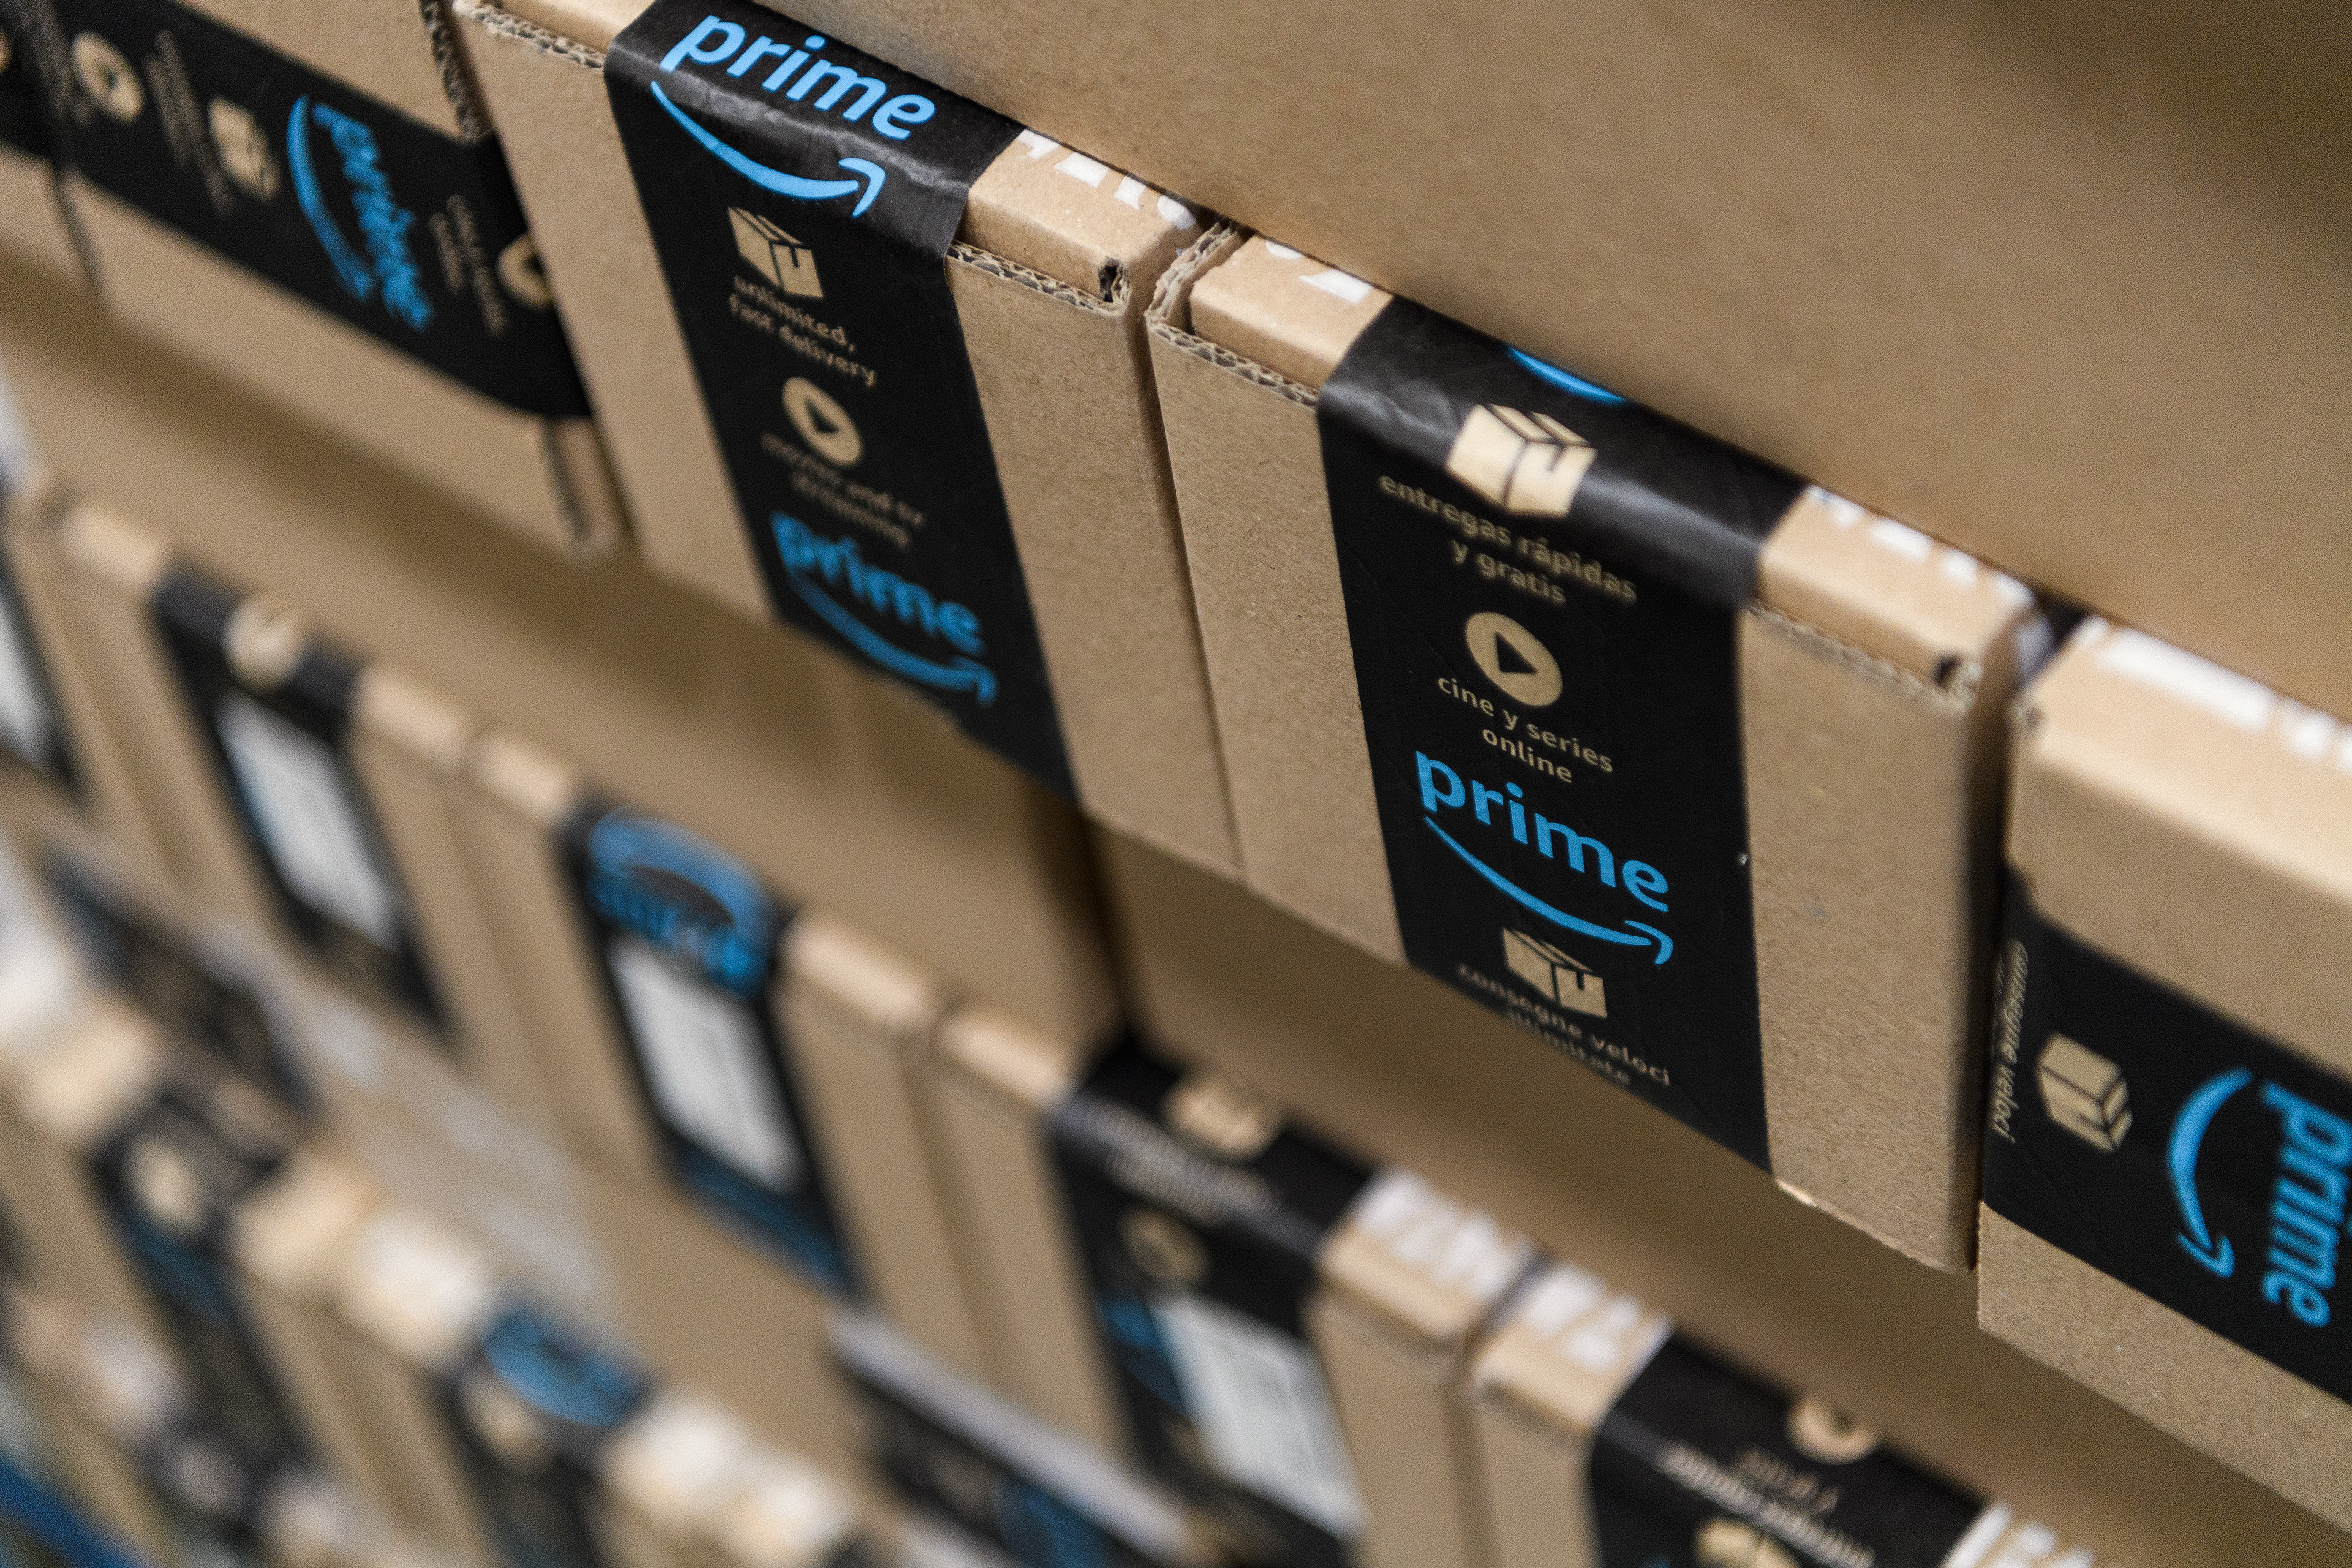 Slowly but surely, the Amazon Prime backlash is coming